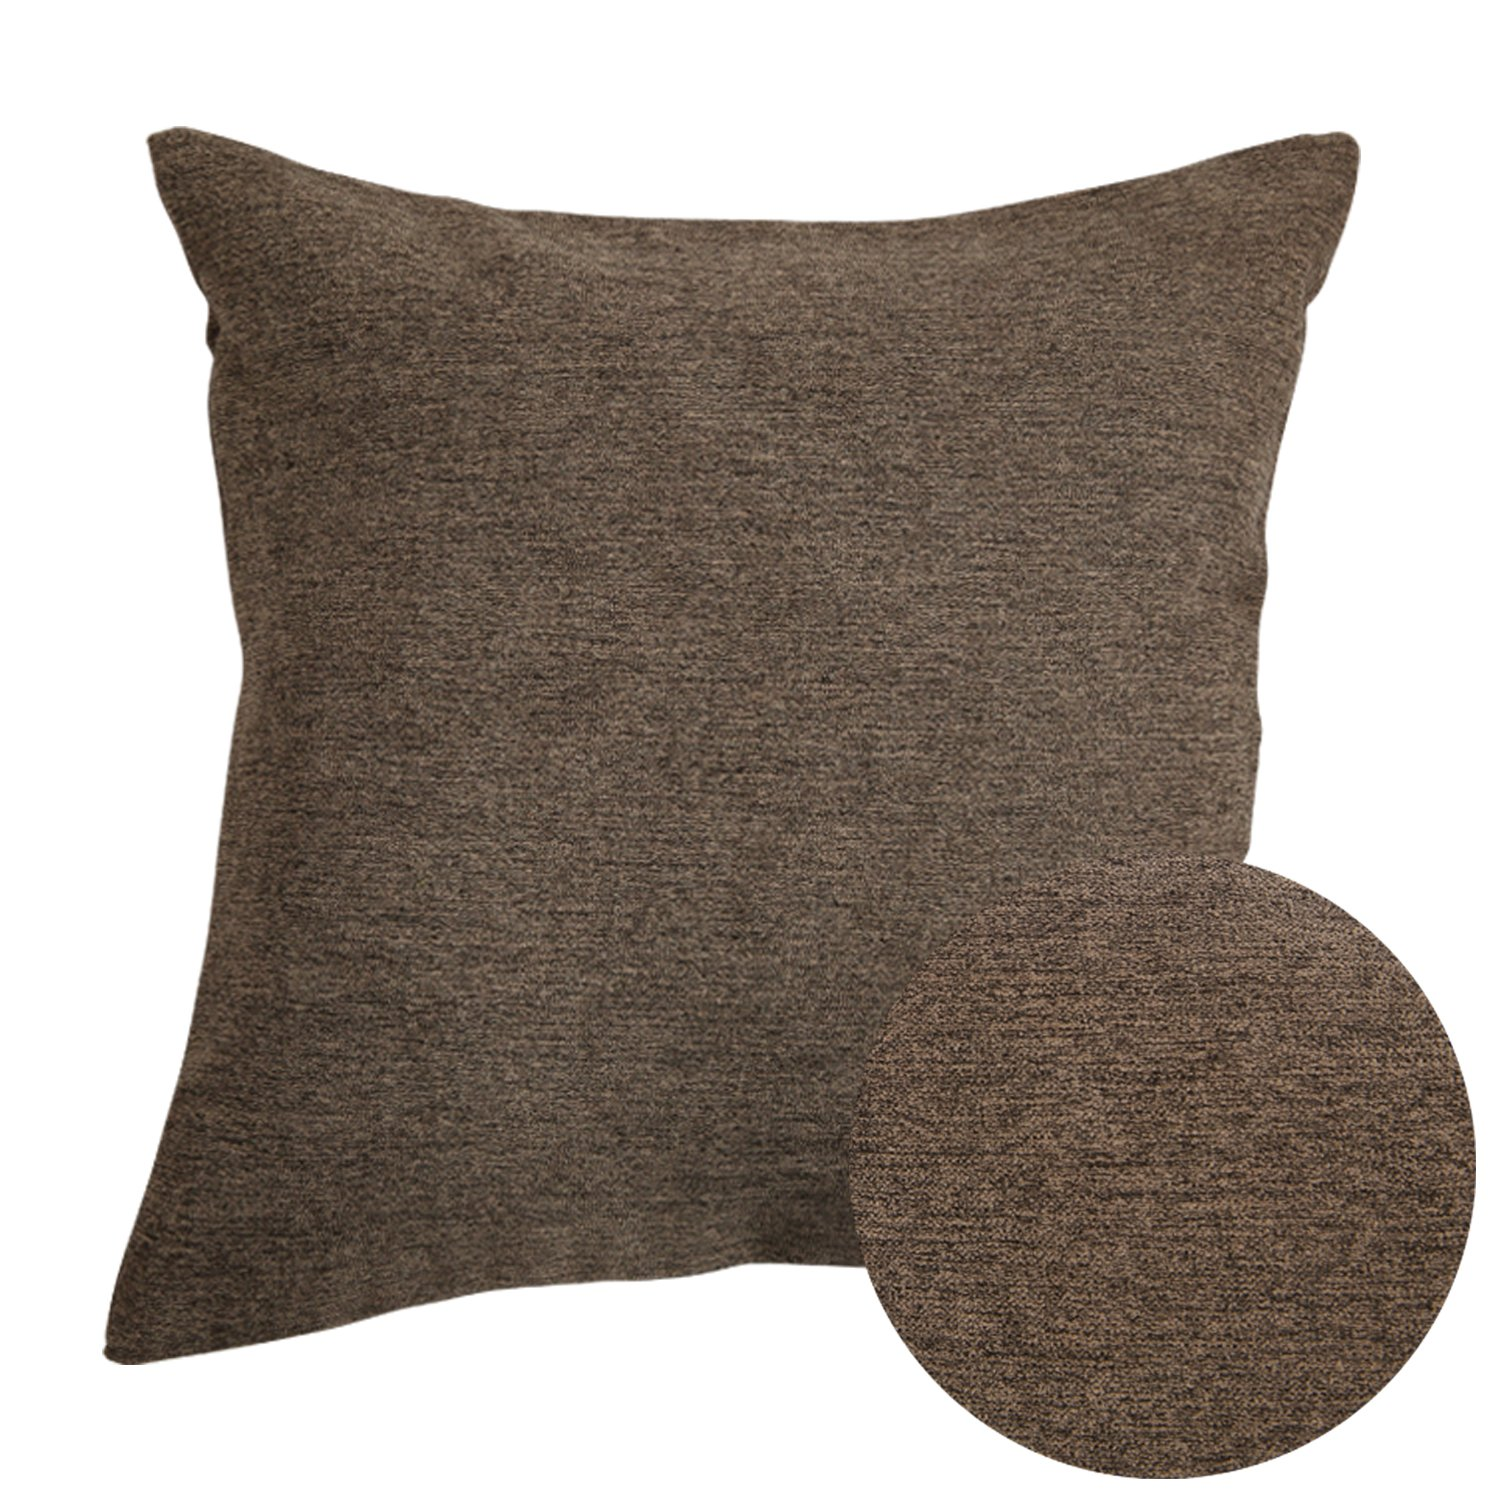 Deconovo Fall Super Soft Melange Fabric Decorative Pillow Cushion Cover with Hidden Zipper for Bed 18 x 18 Inch Chocolate SYNCHKG118720